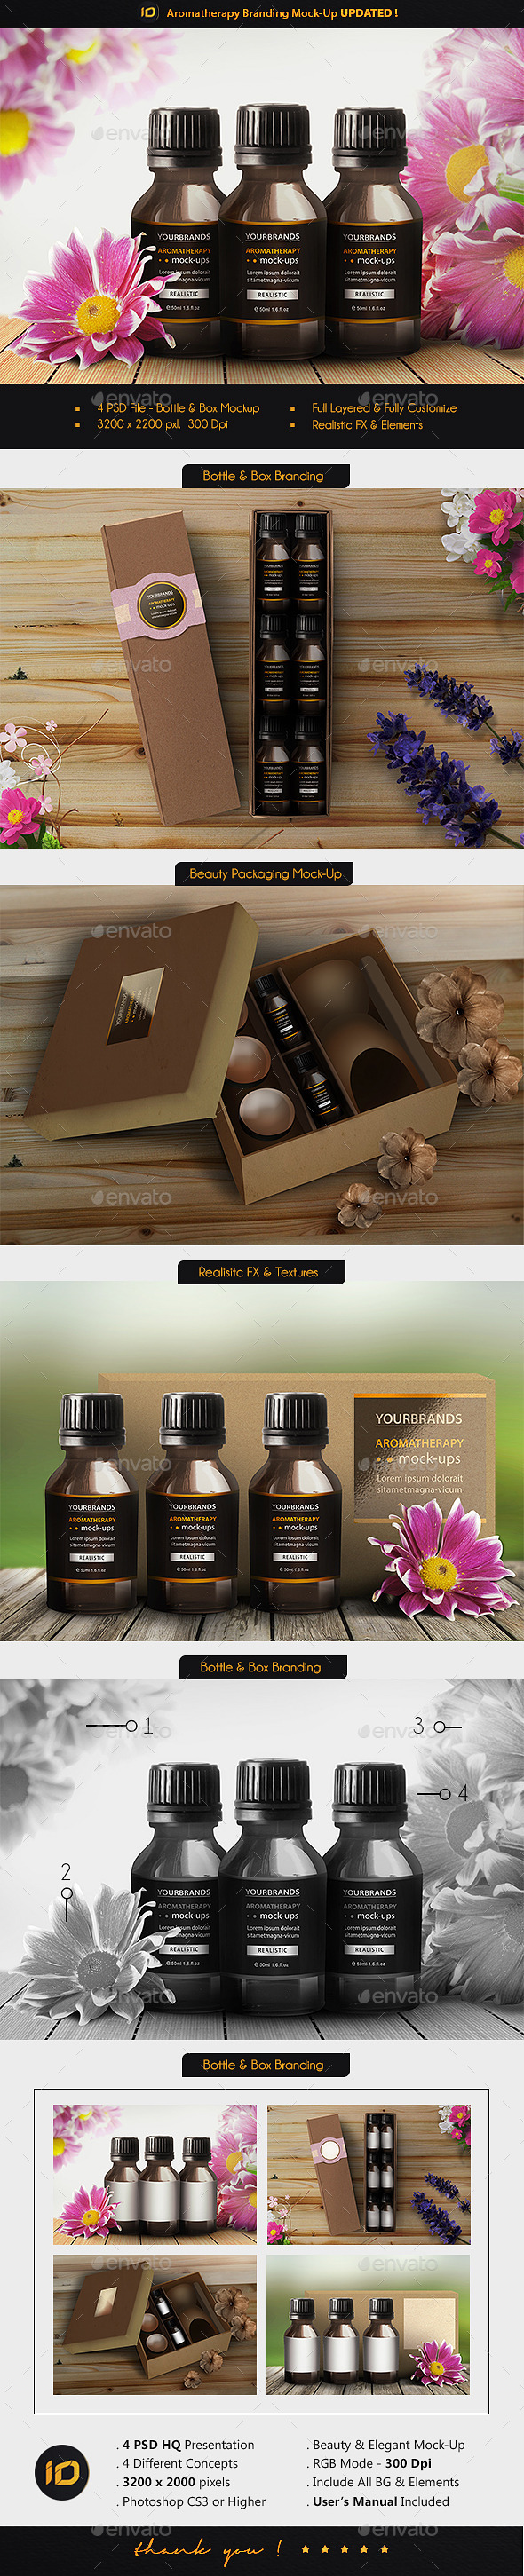 Aromatherapy Branding Mock-Up